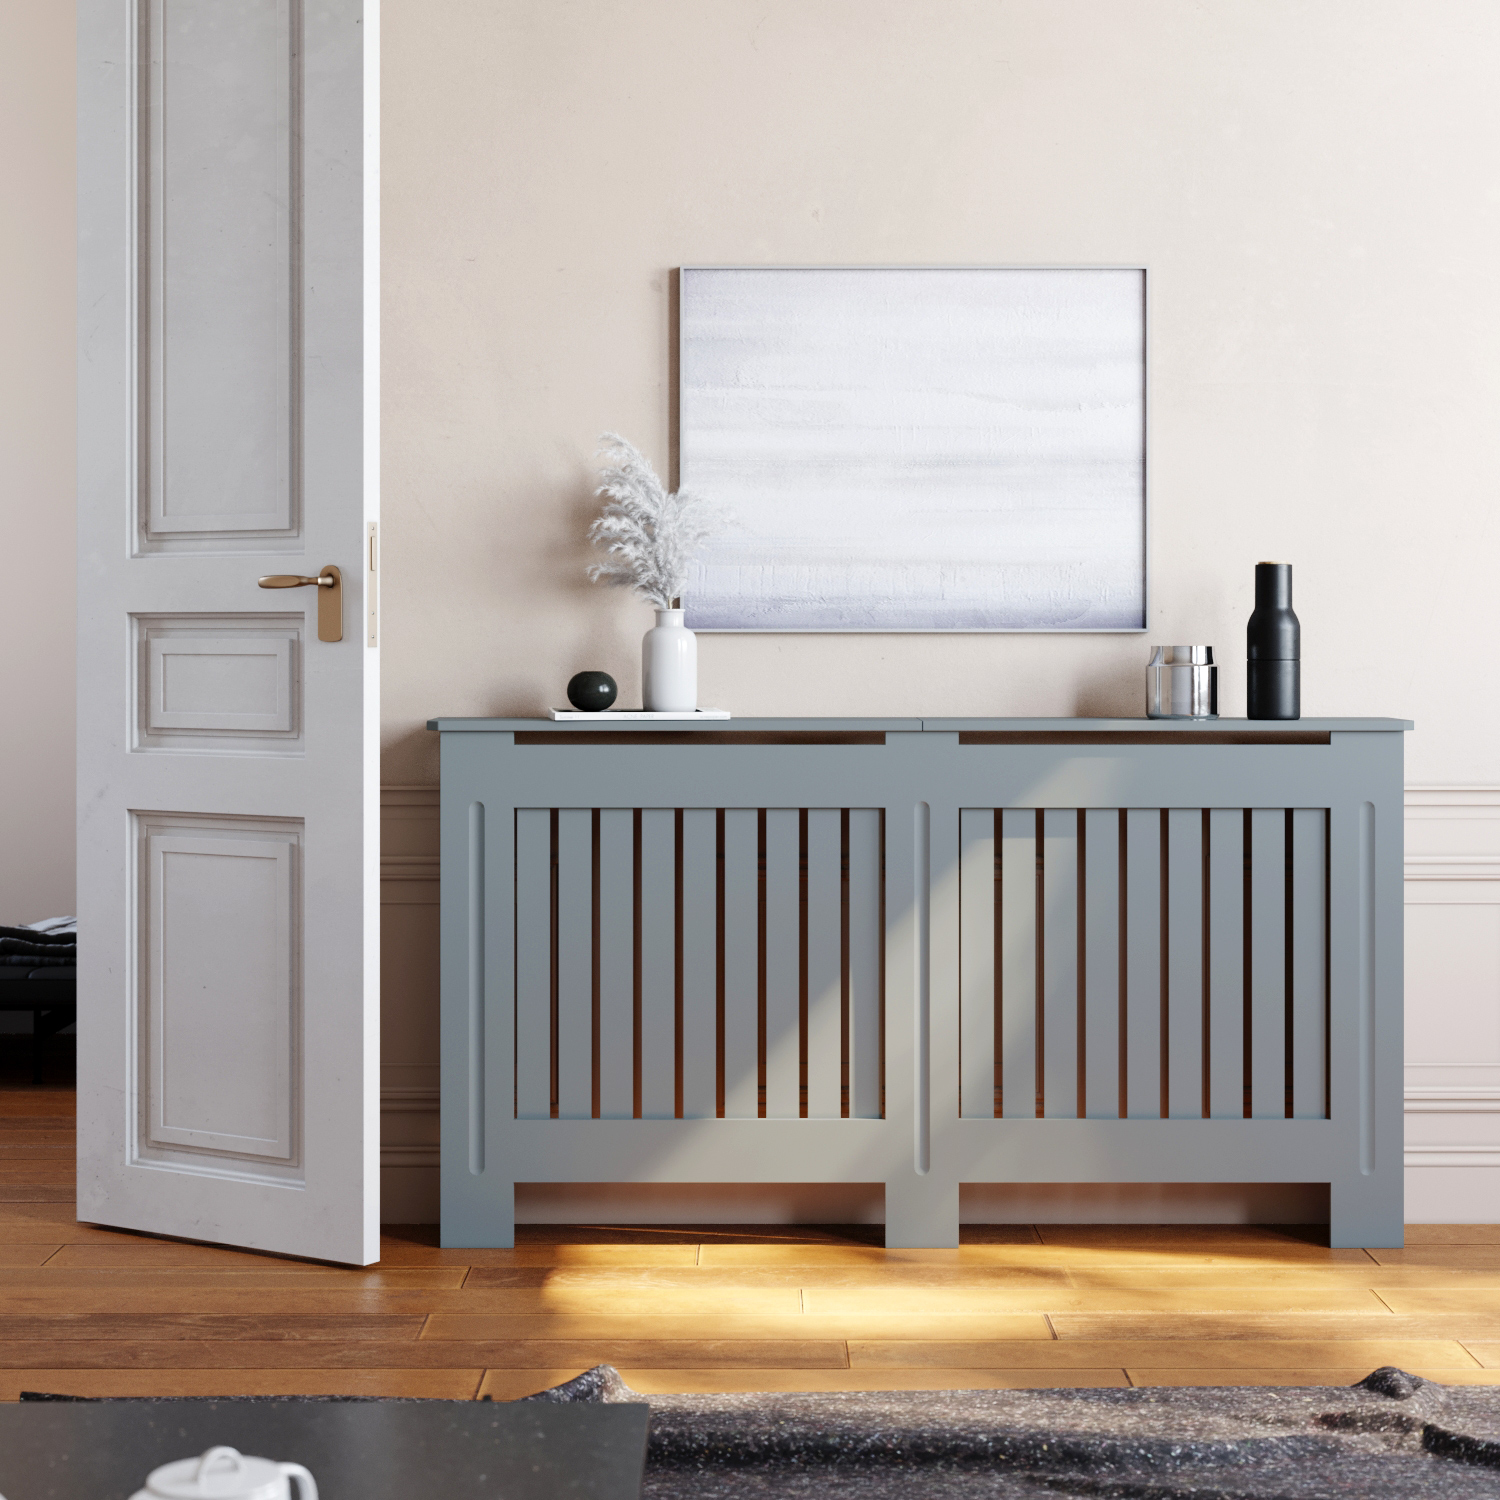 Large Radiator Cover Modern Grey Mdf Wood Cabinet Vertical Grille Home Decor Ebay